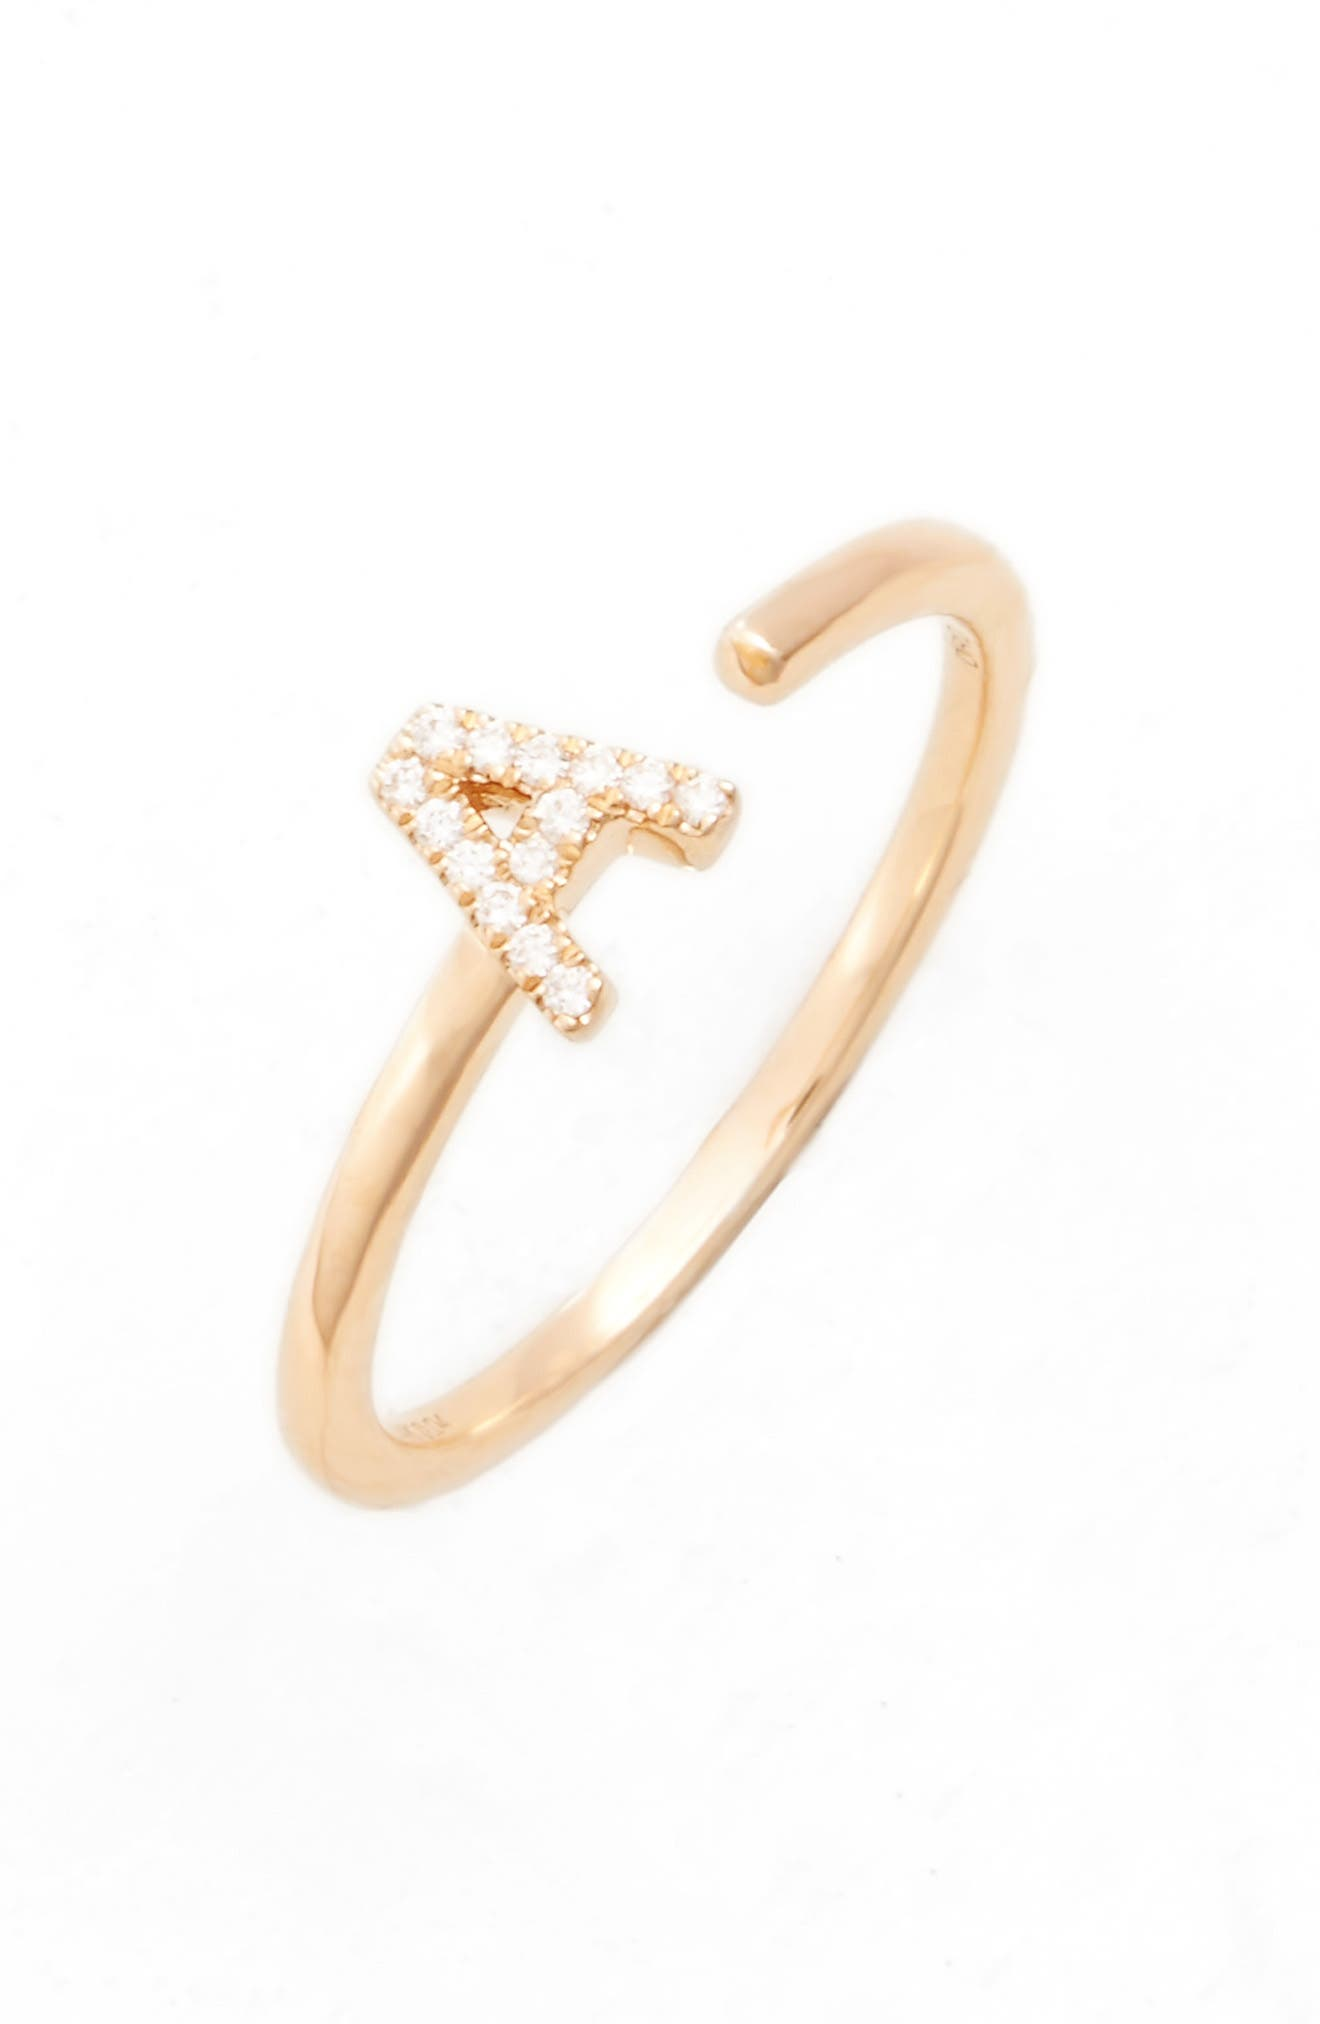 Main Image - Dana Rebecca Designs Single Initial Open Ring